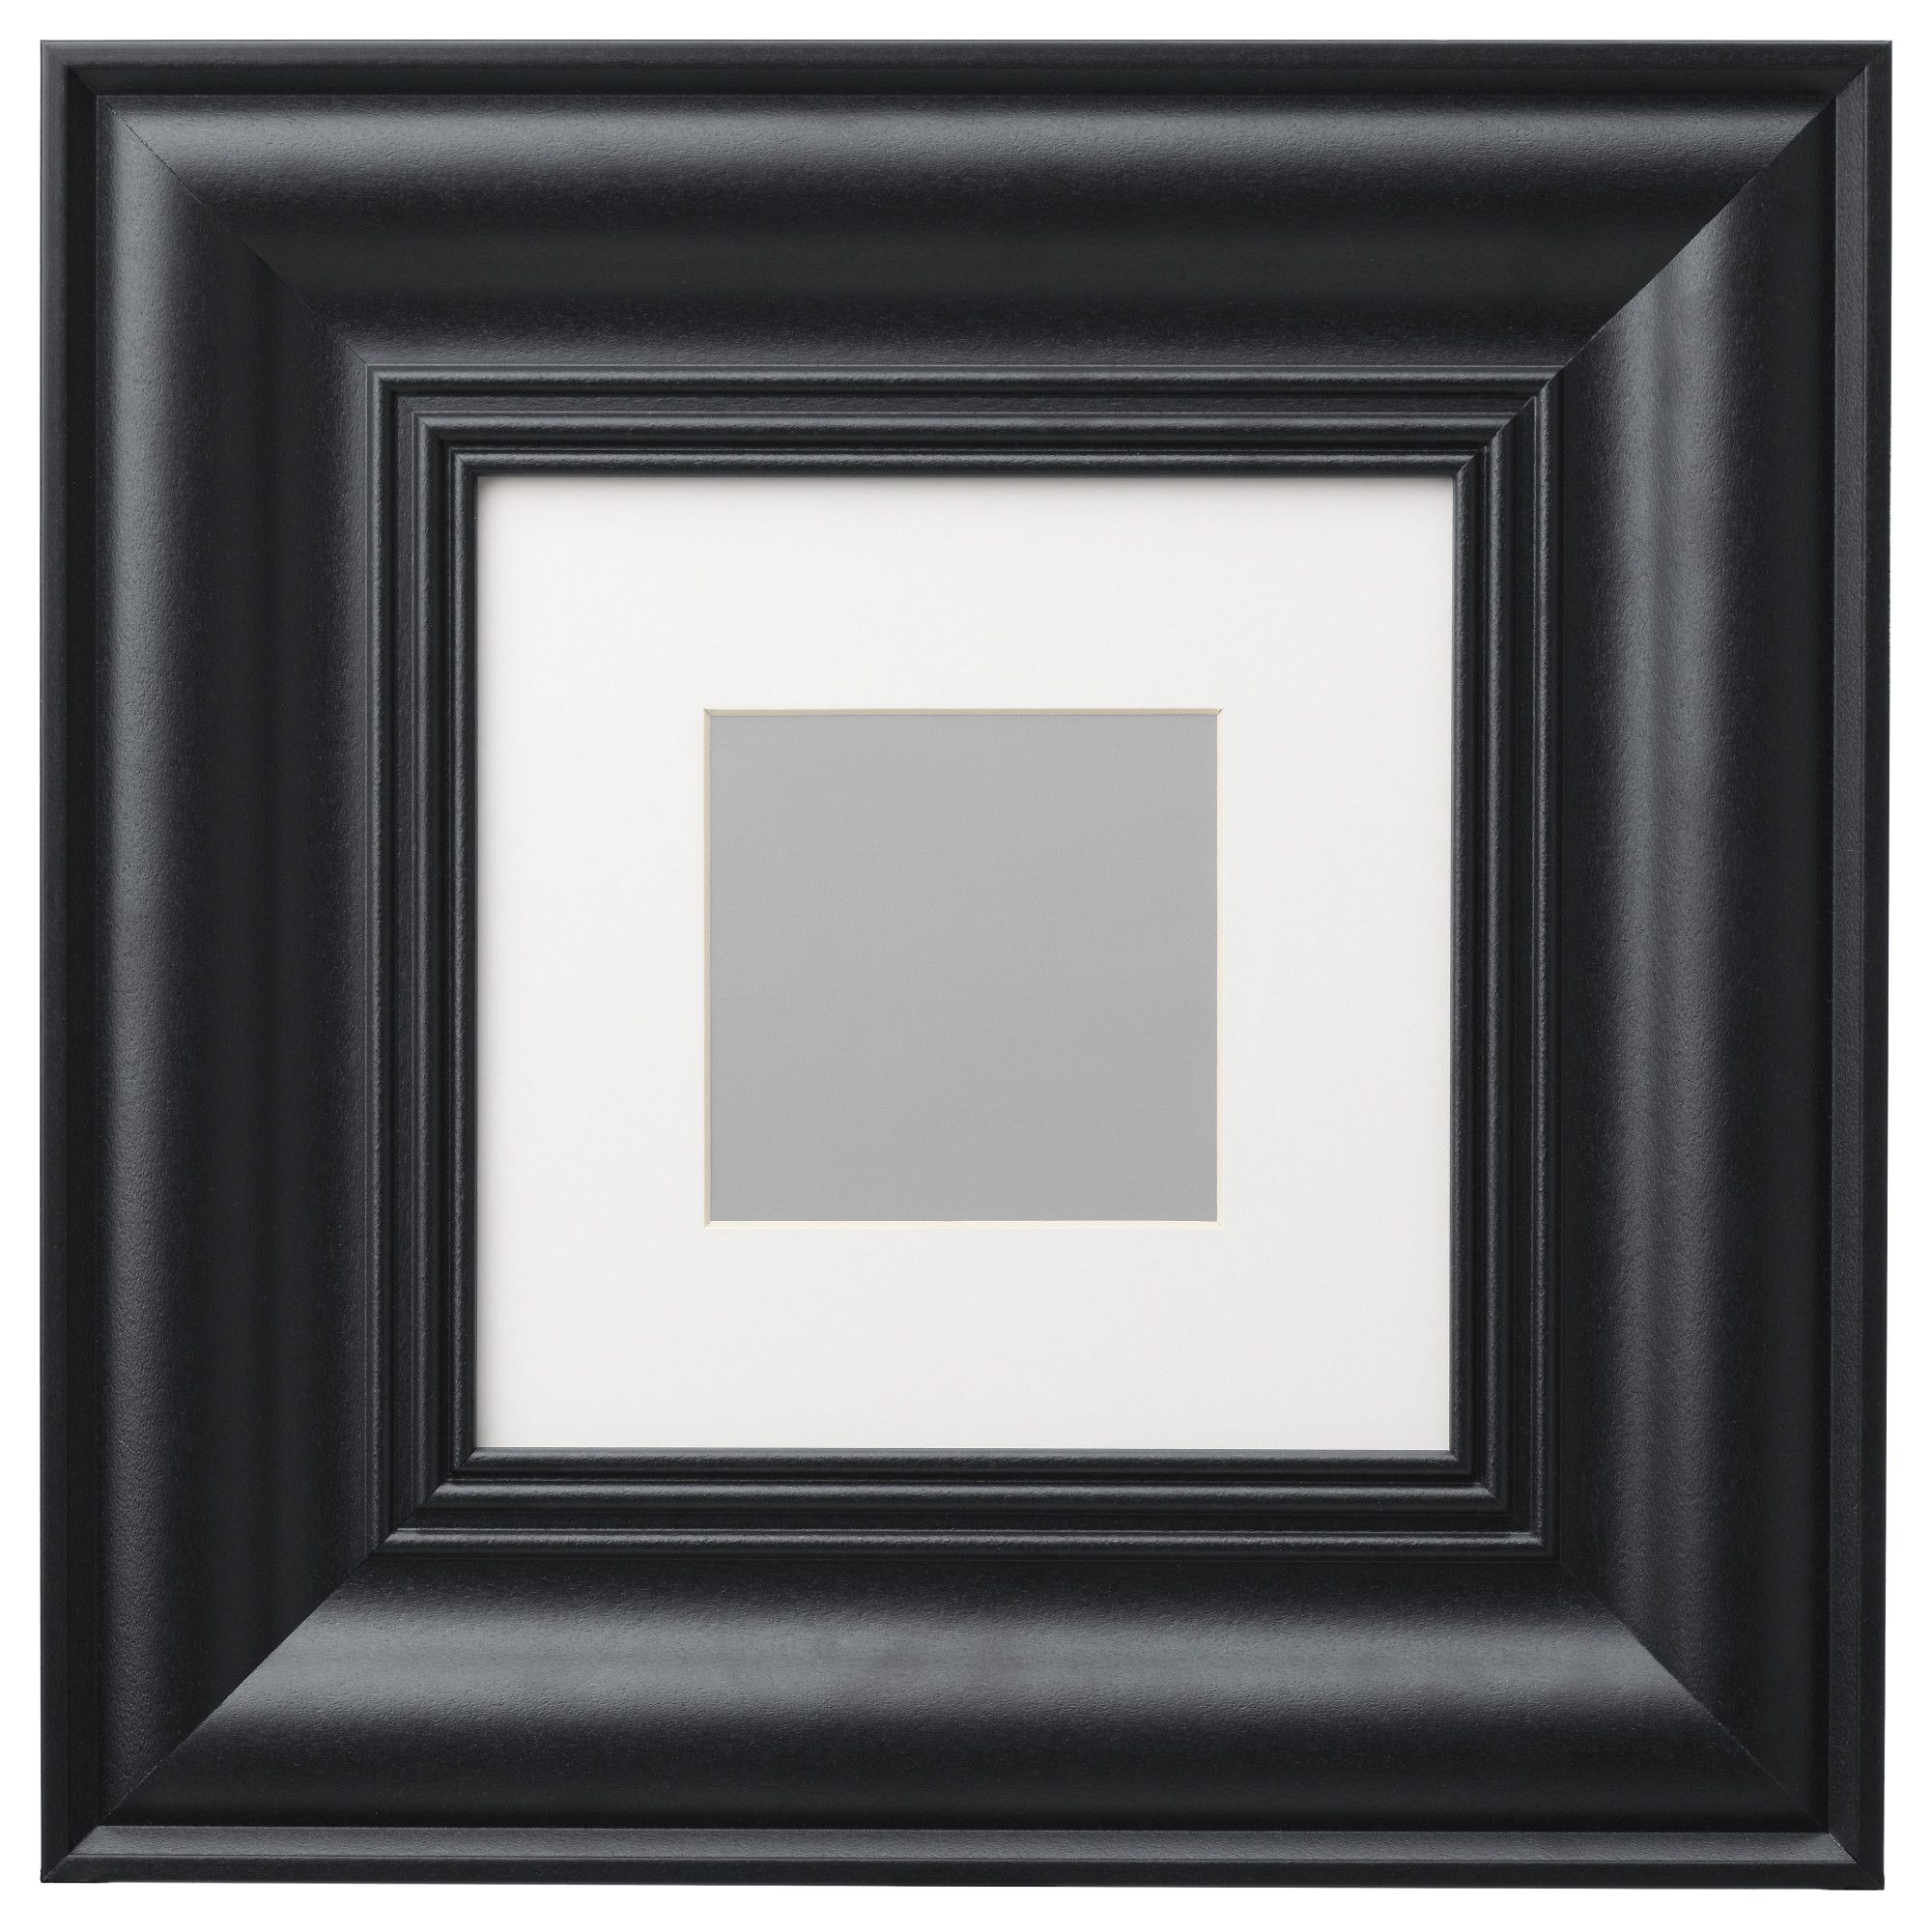 IKEA - SKATTEBY, Frame, Available in different sizes.Can also be used without the mat for a larger picture.Front protection in durable plastic makes the frame safer to use.The frame is made of plastic, which makes it strong, lightweight and easier to handle.